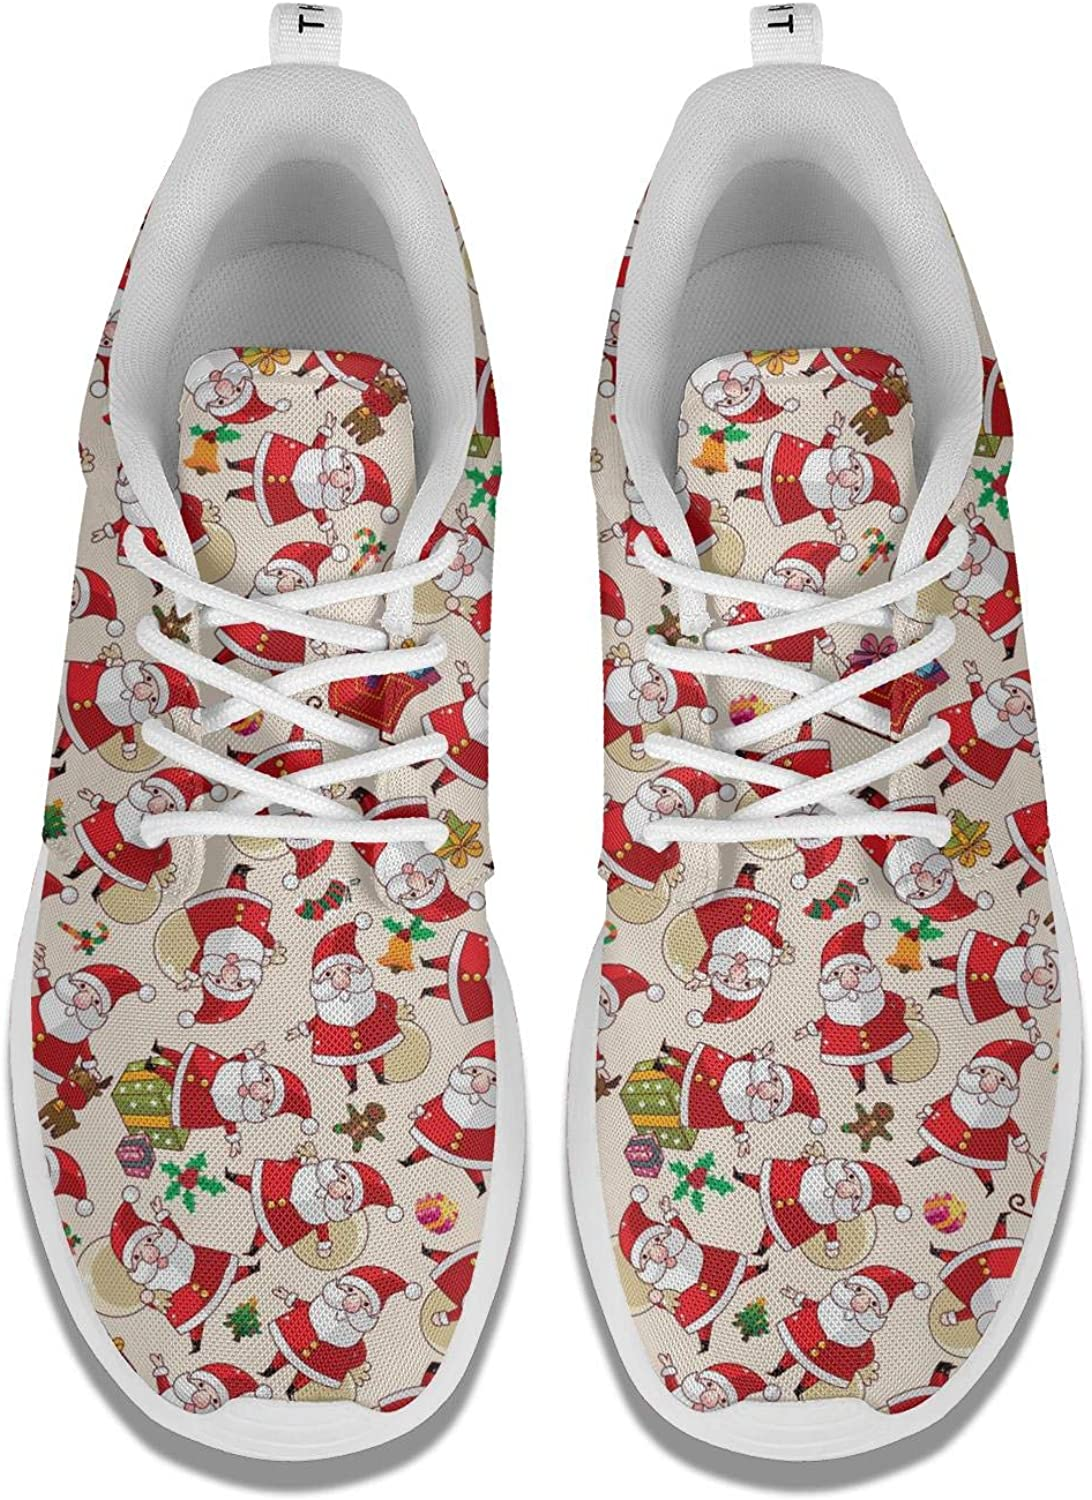 Womens Athleisure Sneakers Dachshund Christmas with Red Hat Ultra Lightweight Breathable Mesh Christmas Fashion Shoes for Ladies